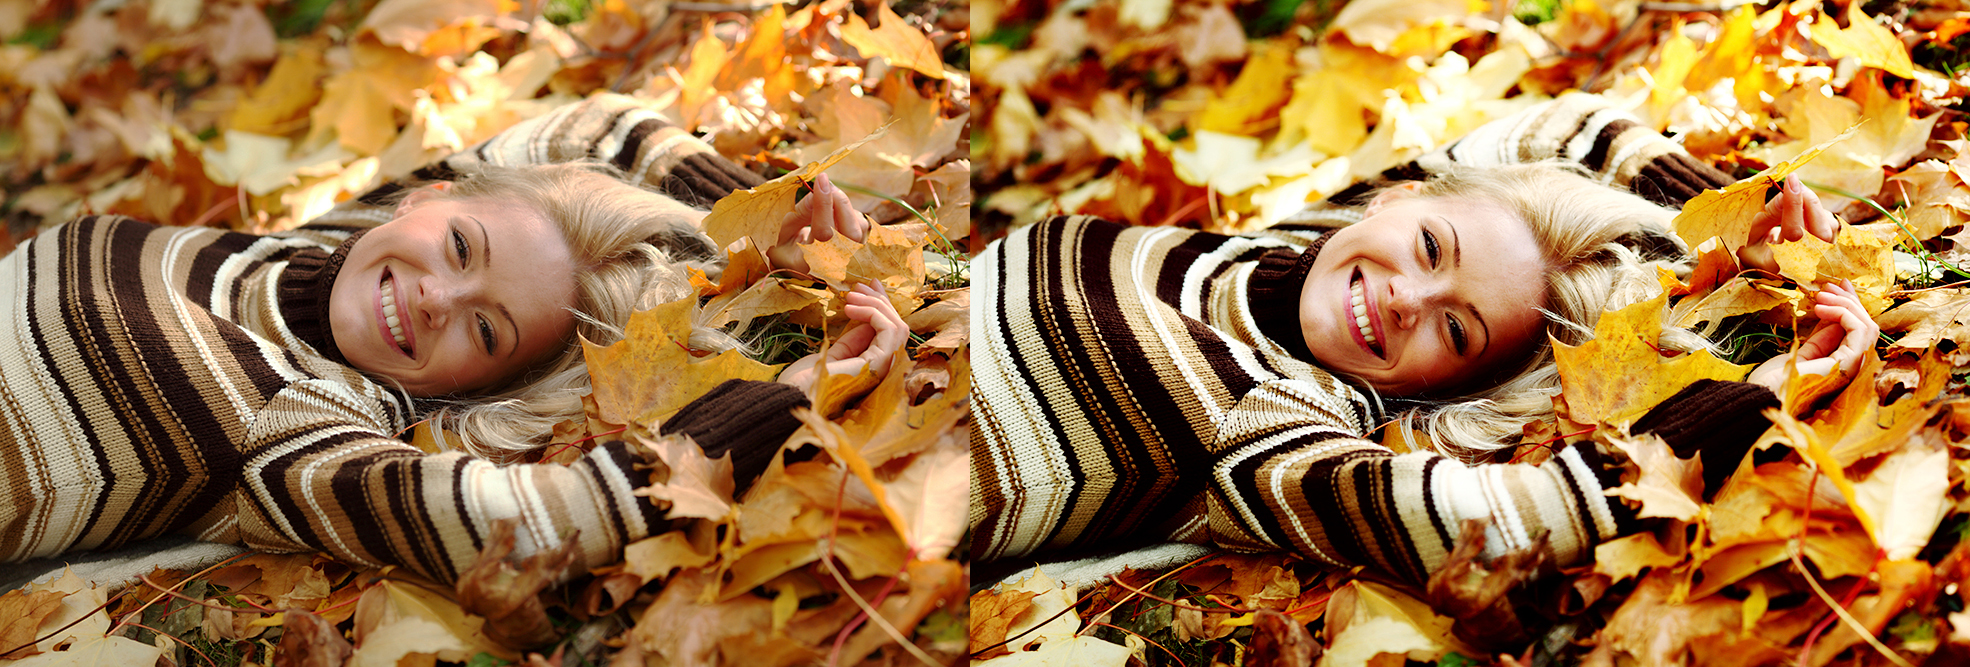 42 Autumn Photoshop Actions Collection (Action for photoshop CS5,CS6,CC) example image 4